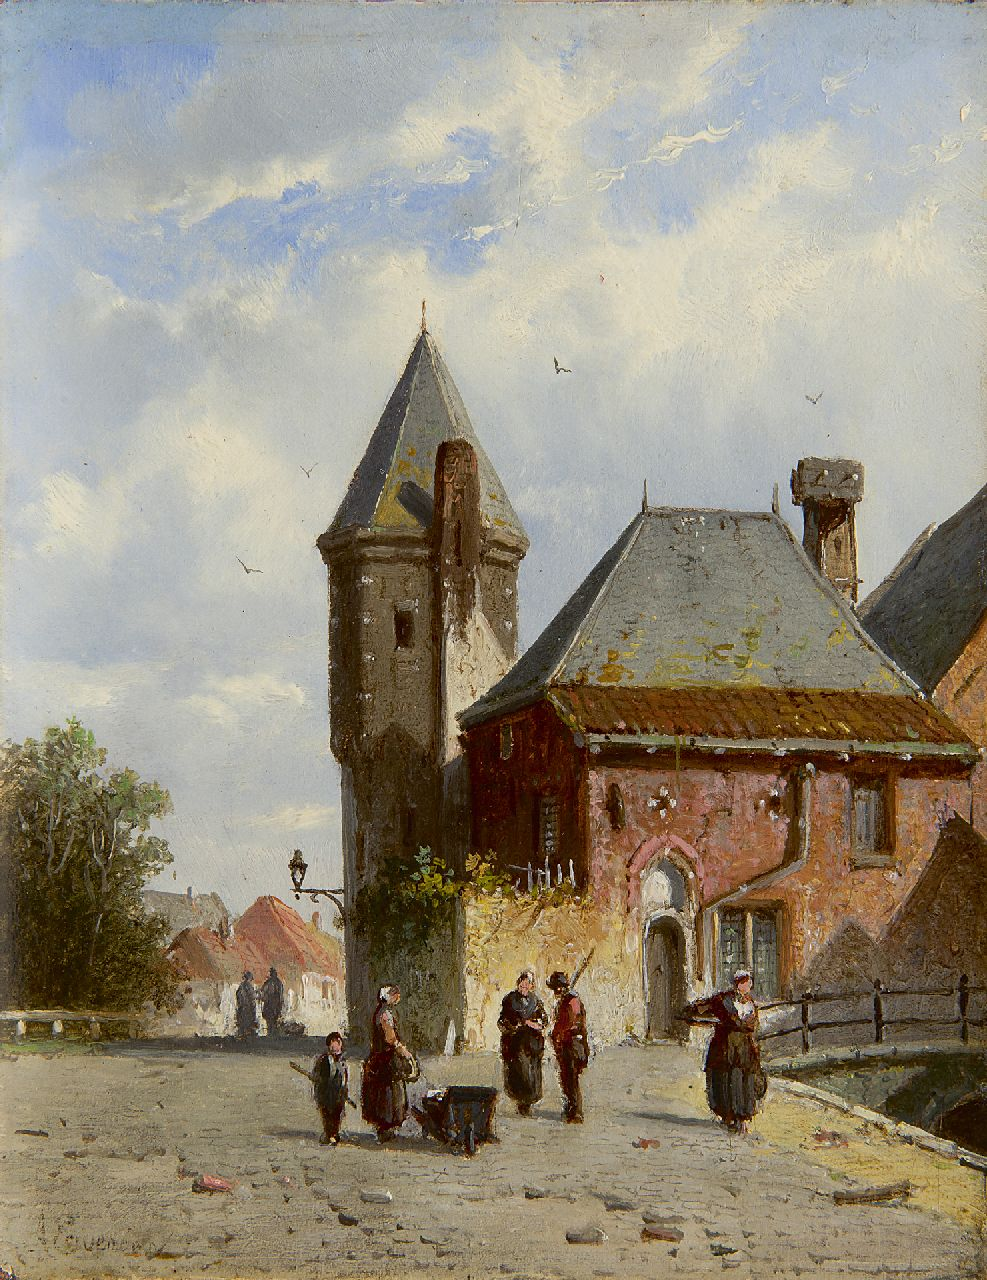 Eversen A.  | Adrianus Eversen, A sunny quai with figures and the Koppelpoort, Amersfoort, oil on panel 19.3 x 15.0 cm, signed l.l. and on a label on the reverse